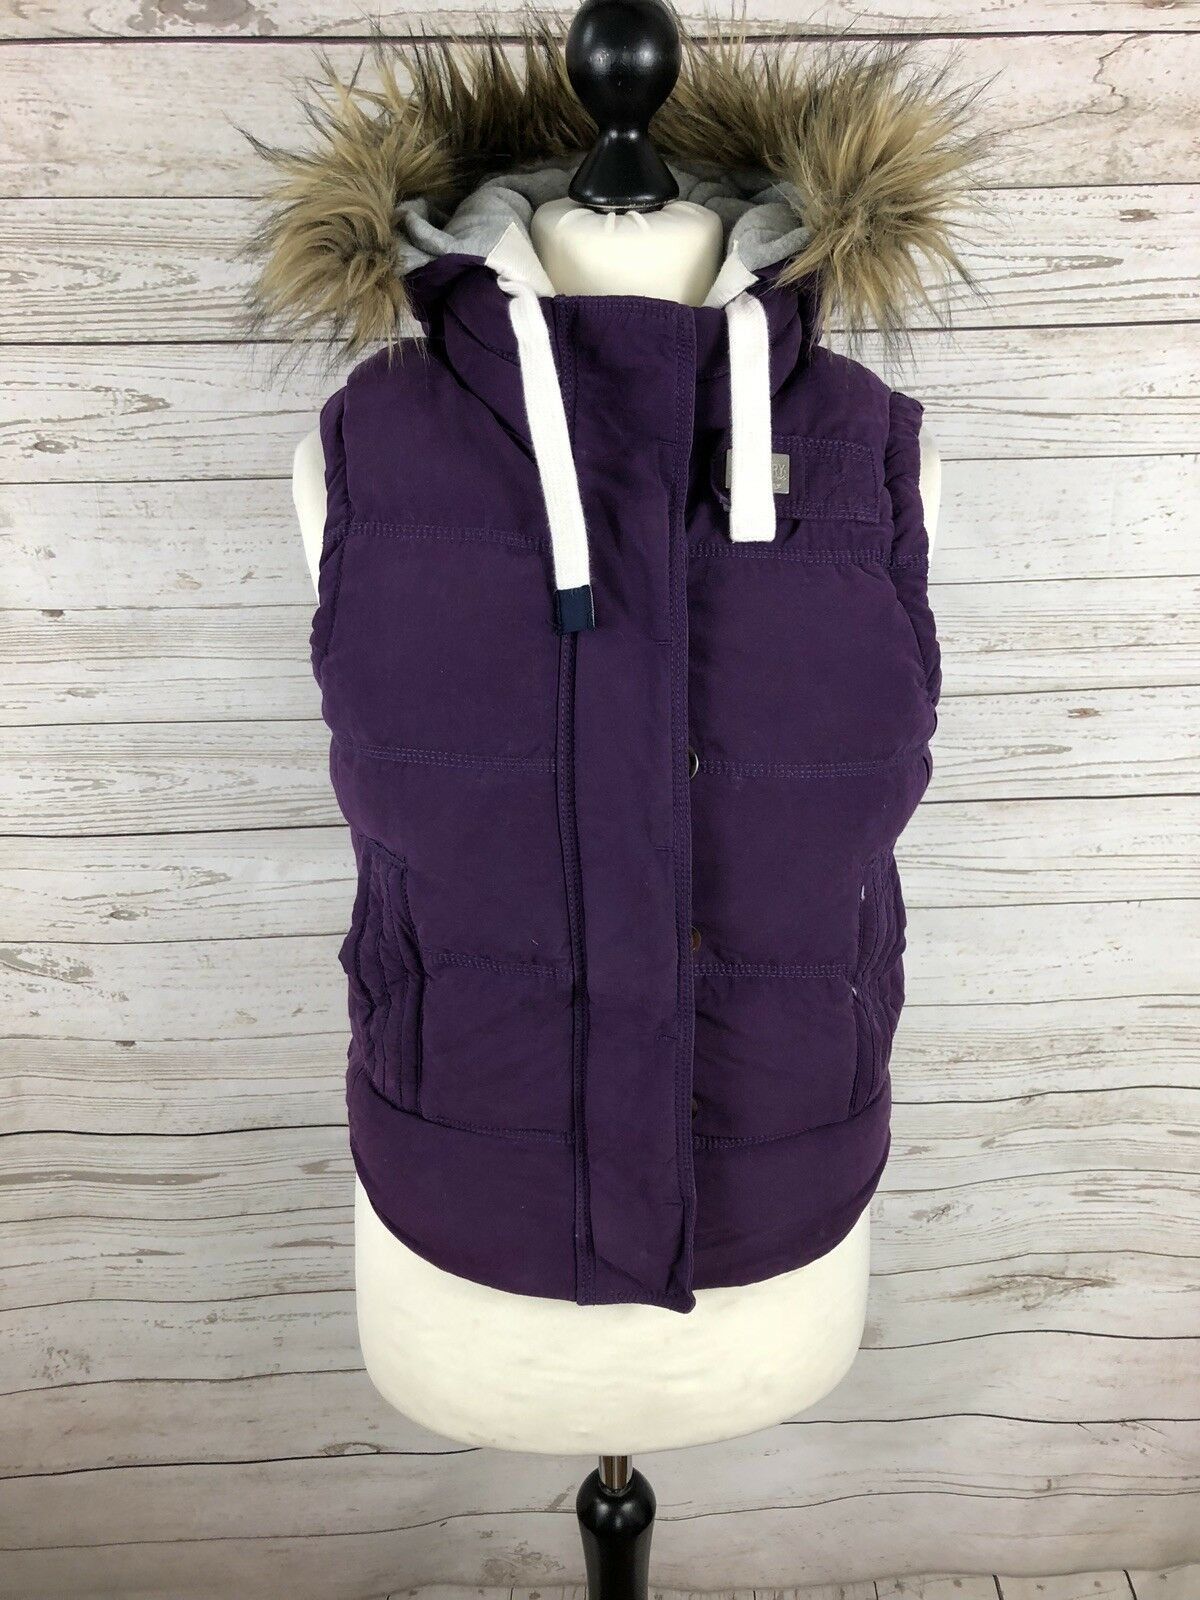 SUPERDRY Quilted Quilted Quilted Gilet Bodywarmer - Small - Purple - Great Condition - Women's c63bc7